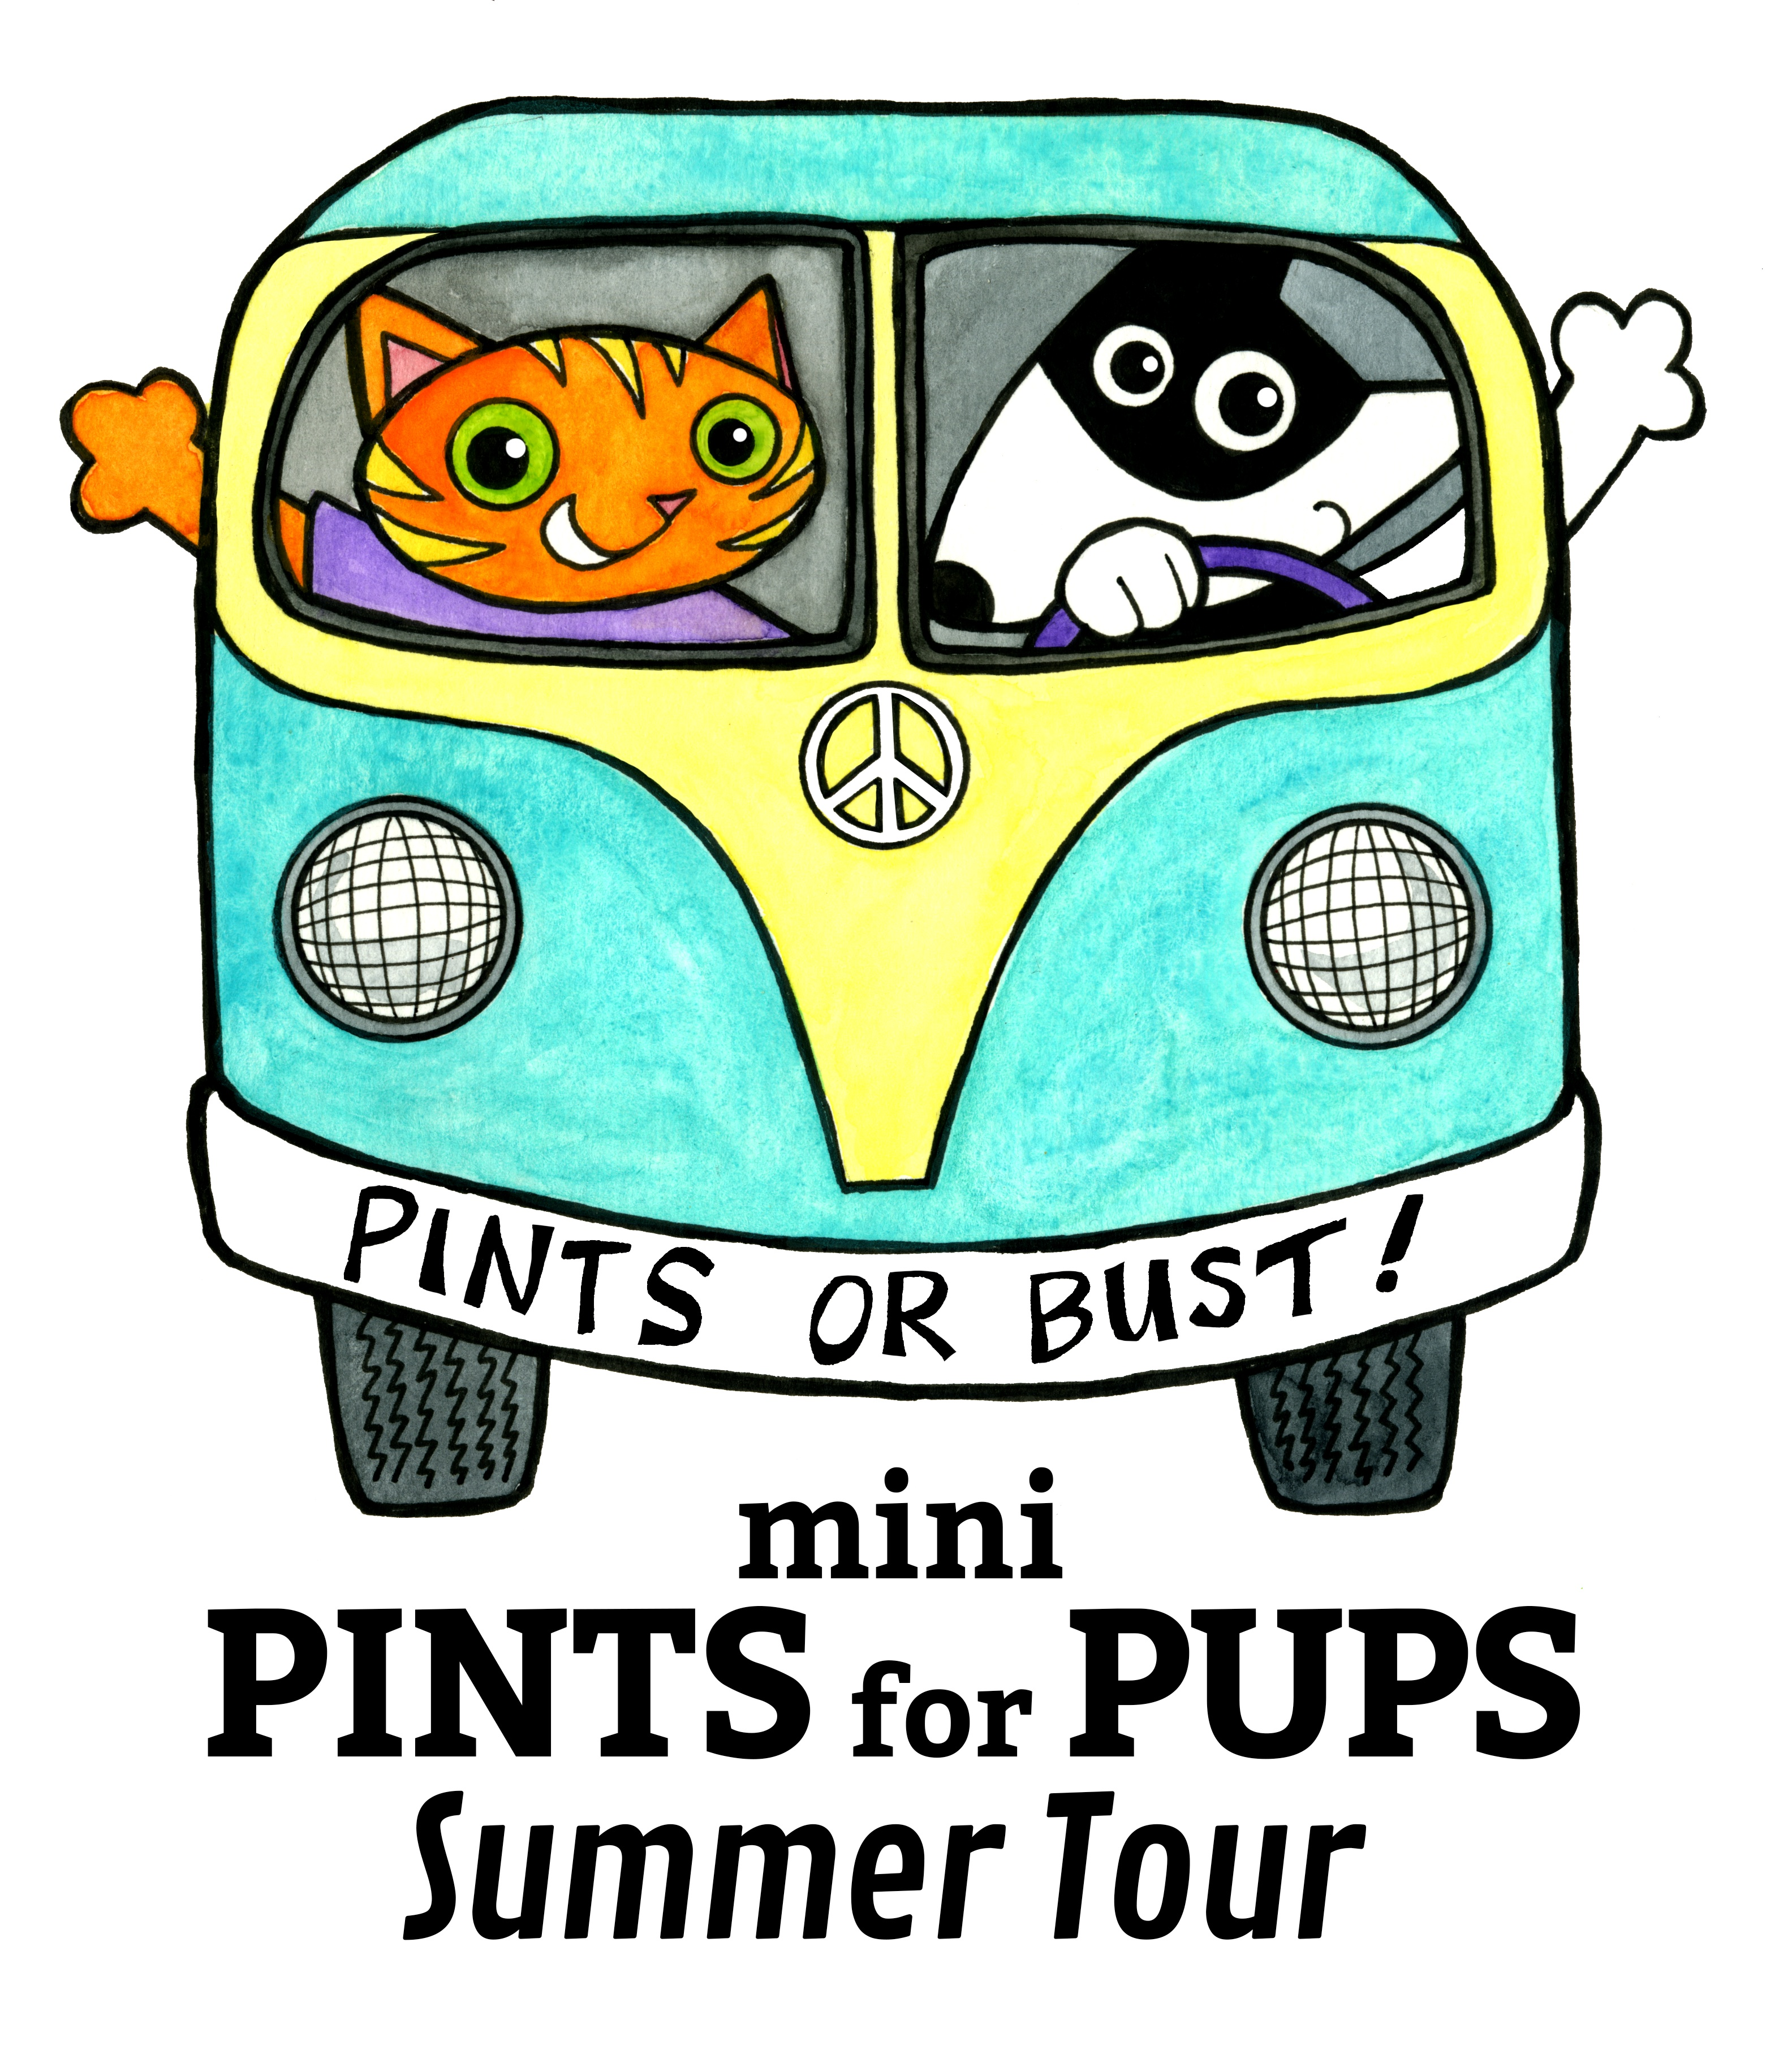 This Year, Pints For Pups Is Going On Tour